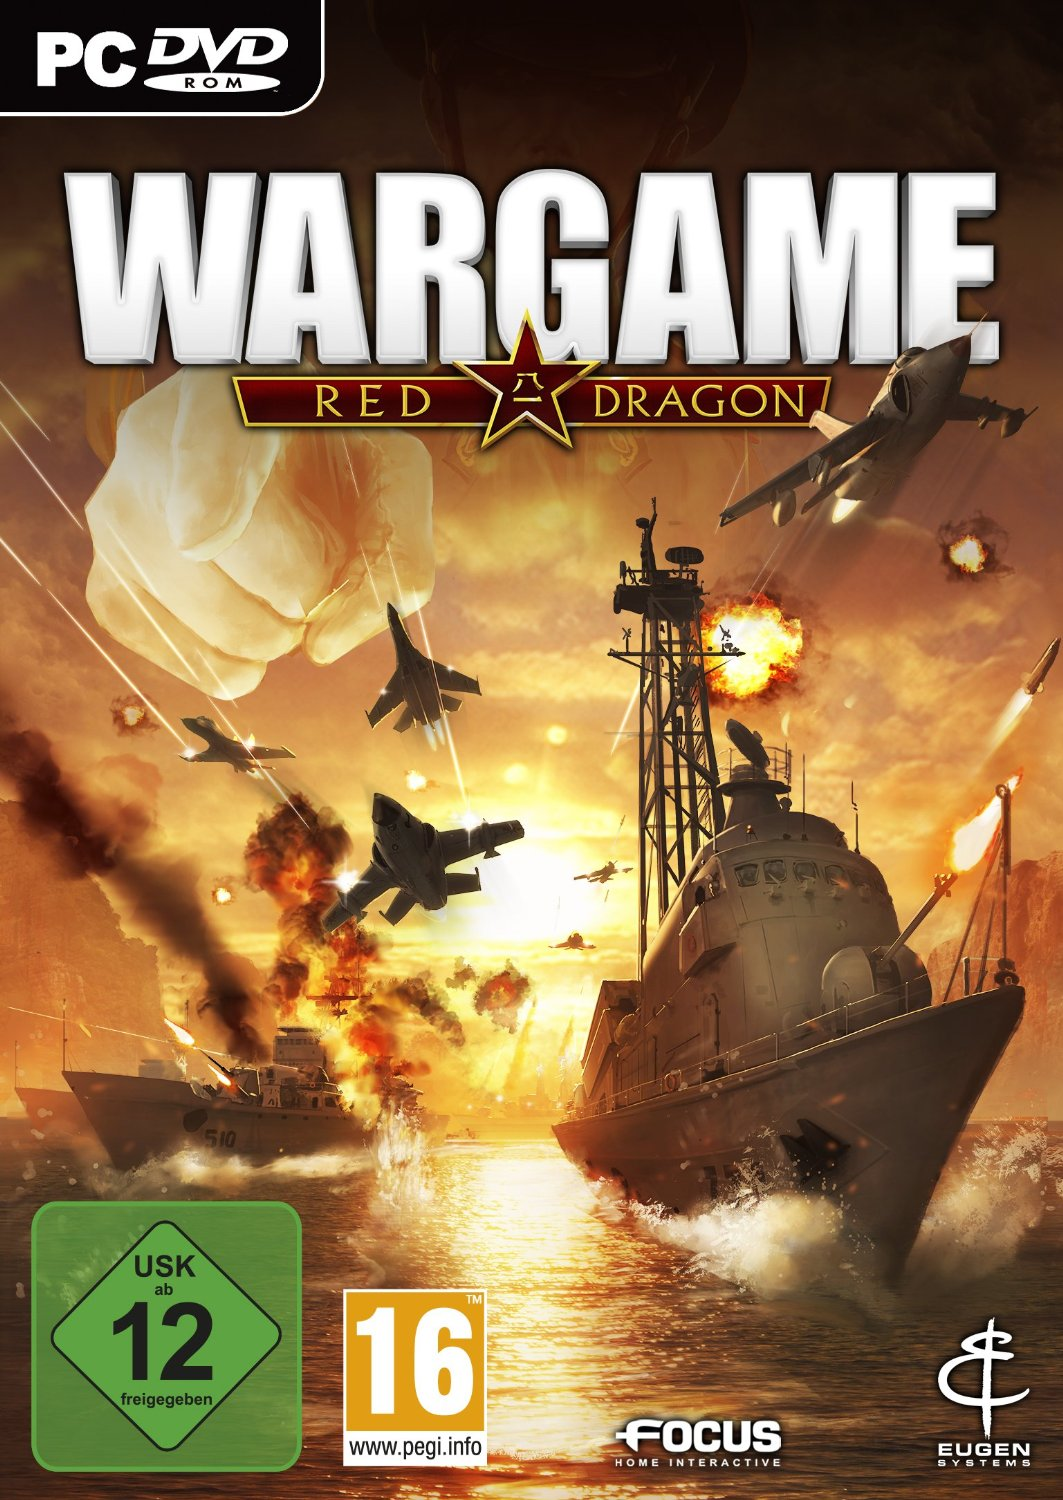 http://rozup.ir/up/narsis3/Pictures/Wargame-Red-Dragon-pc-cover-large.jpg